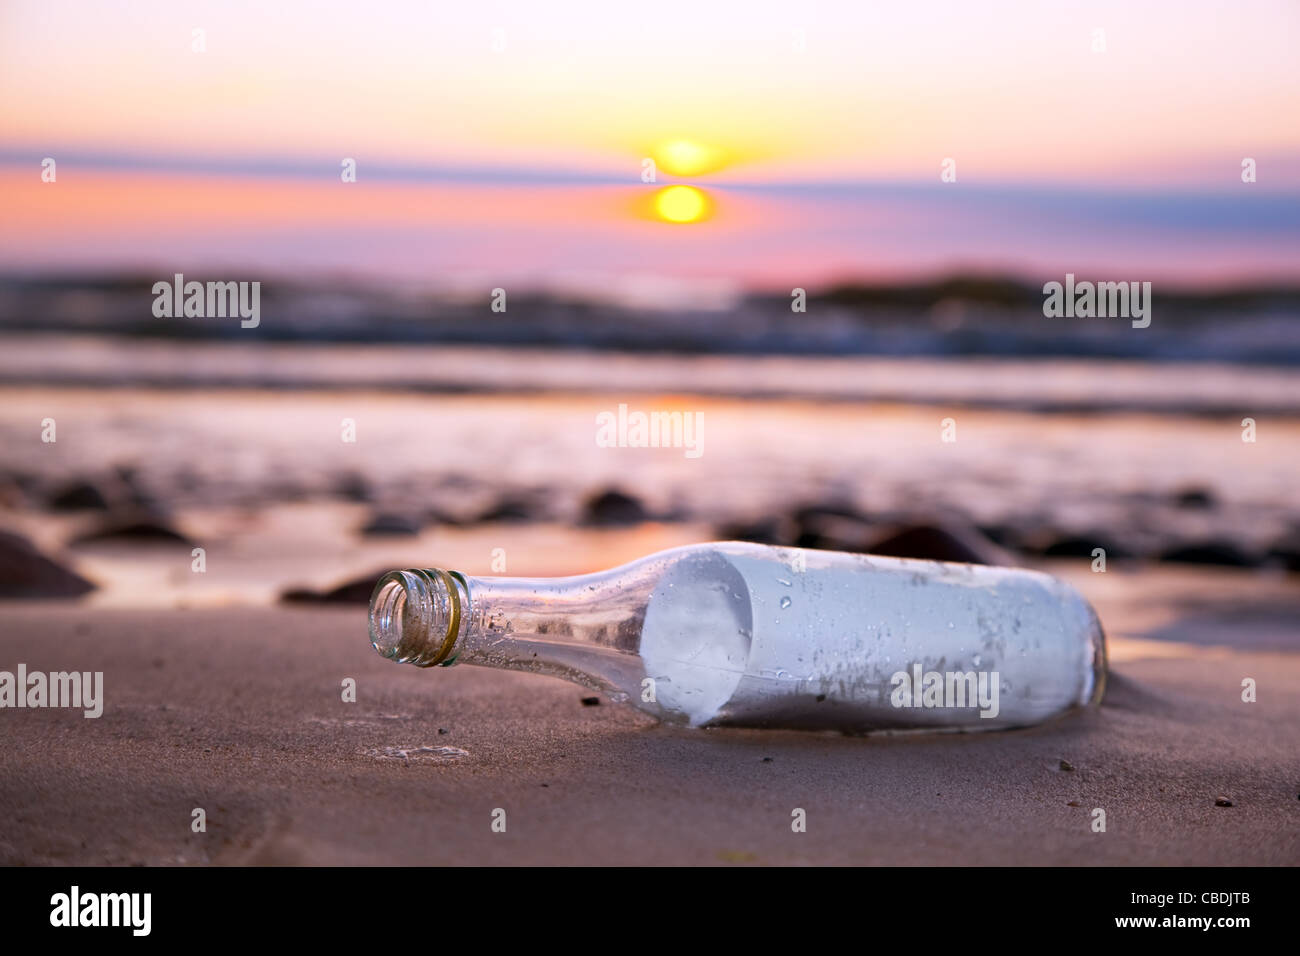 Message in a bottle by the sea on the beach at sunset - Stock Image